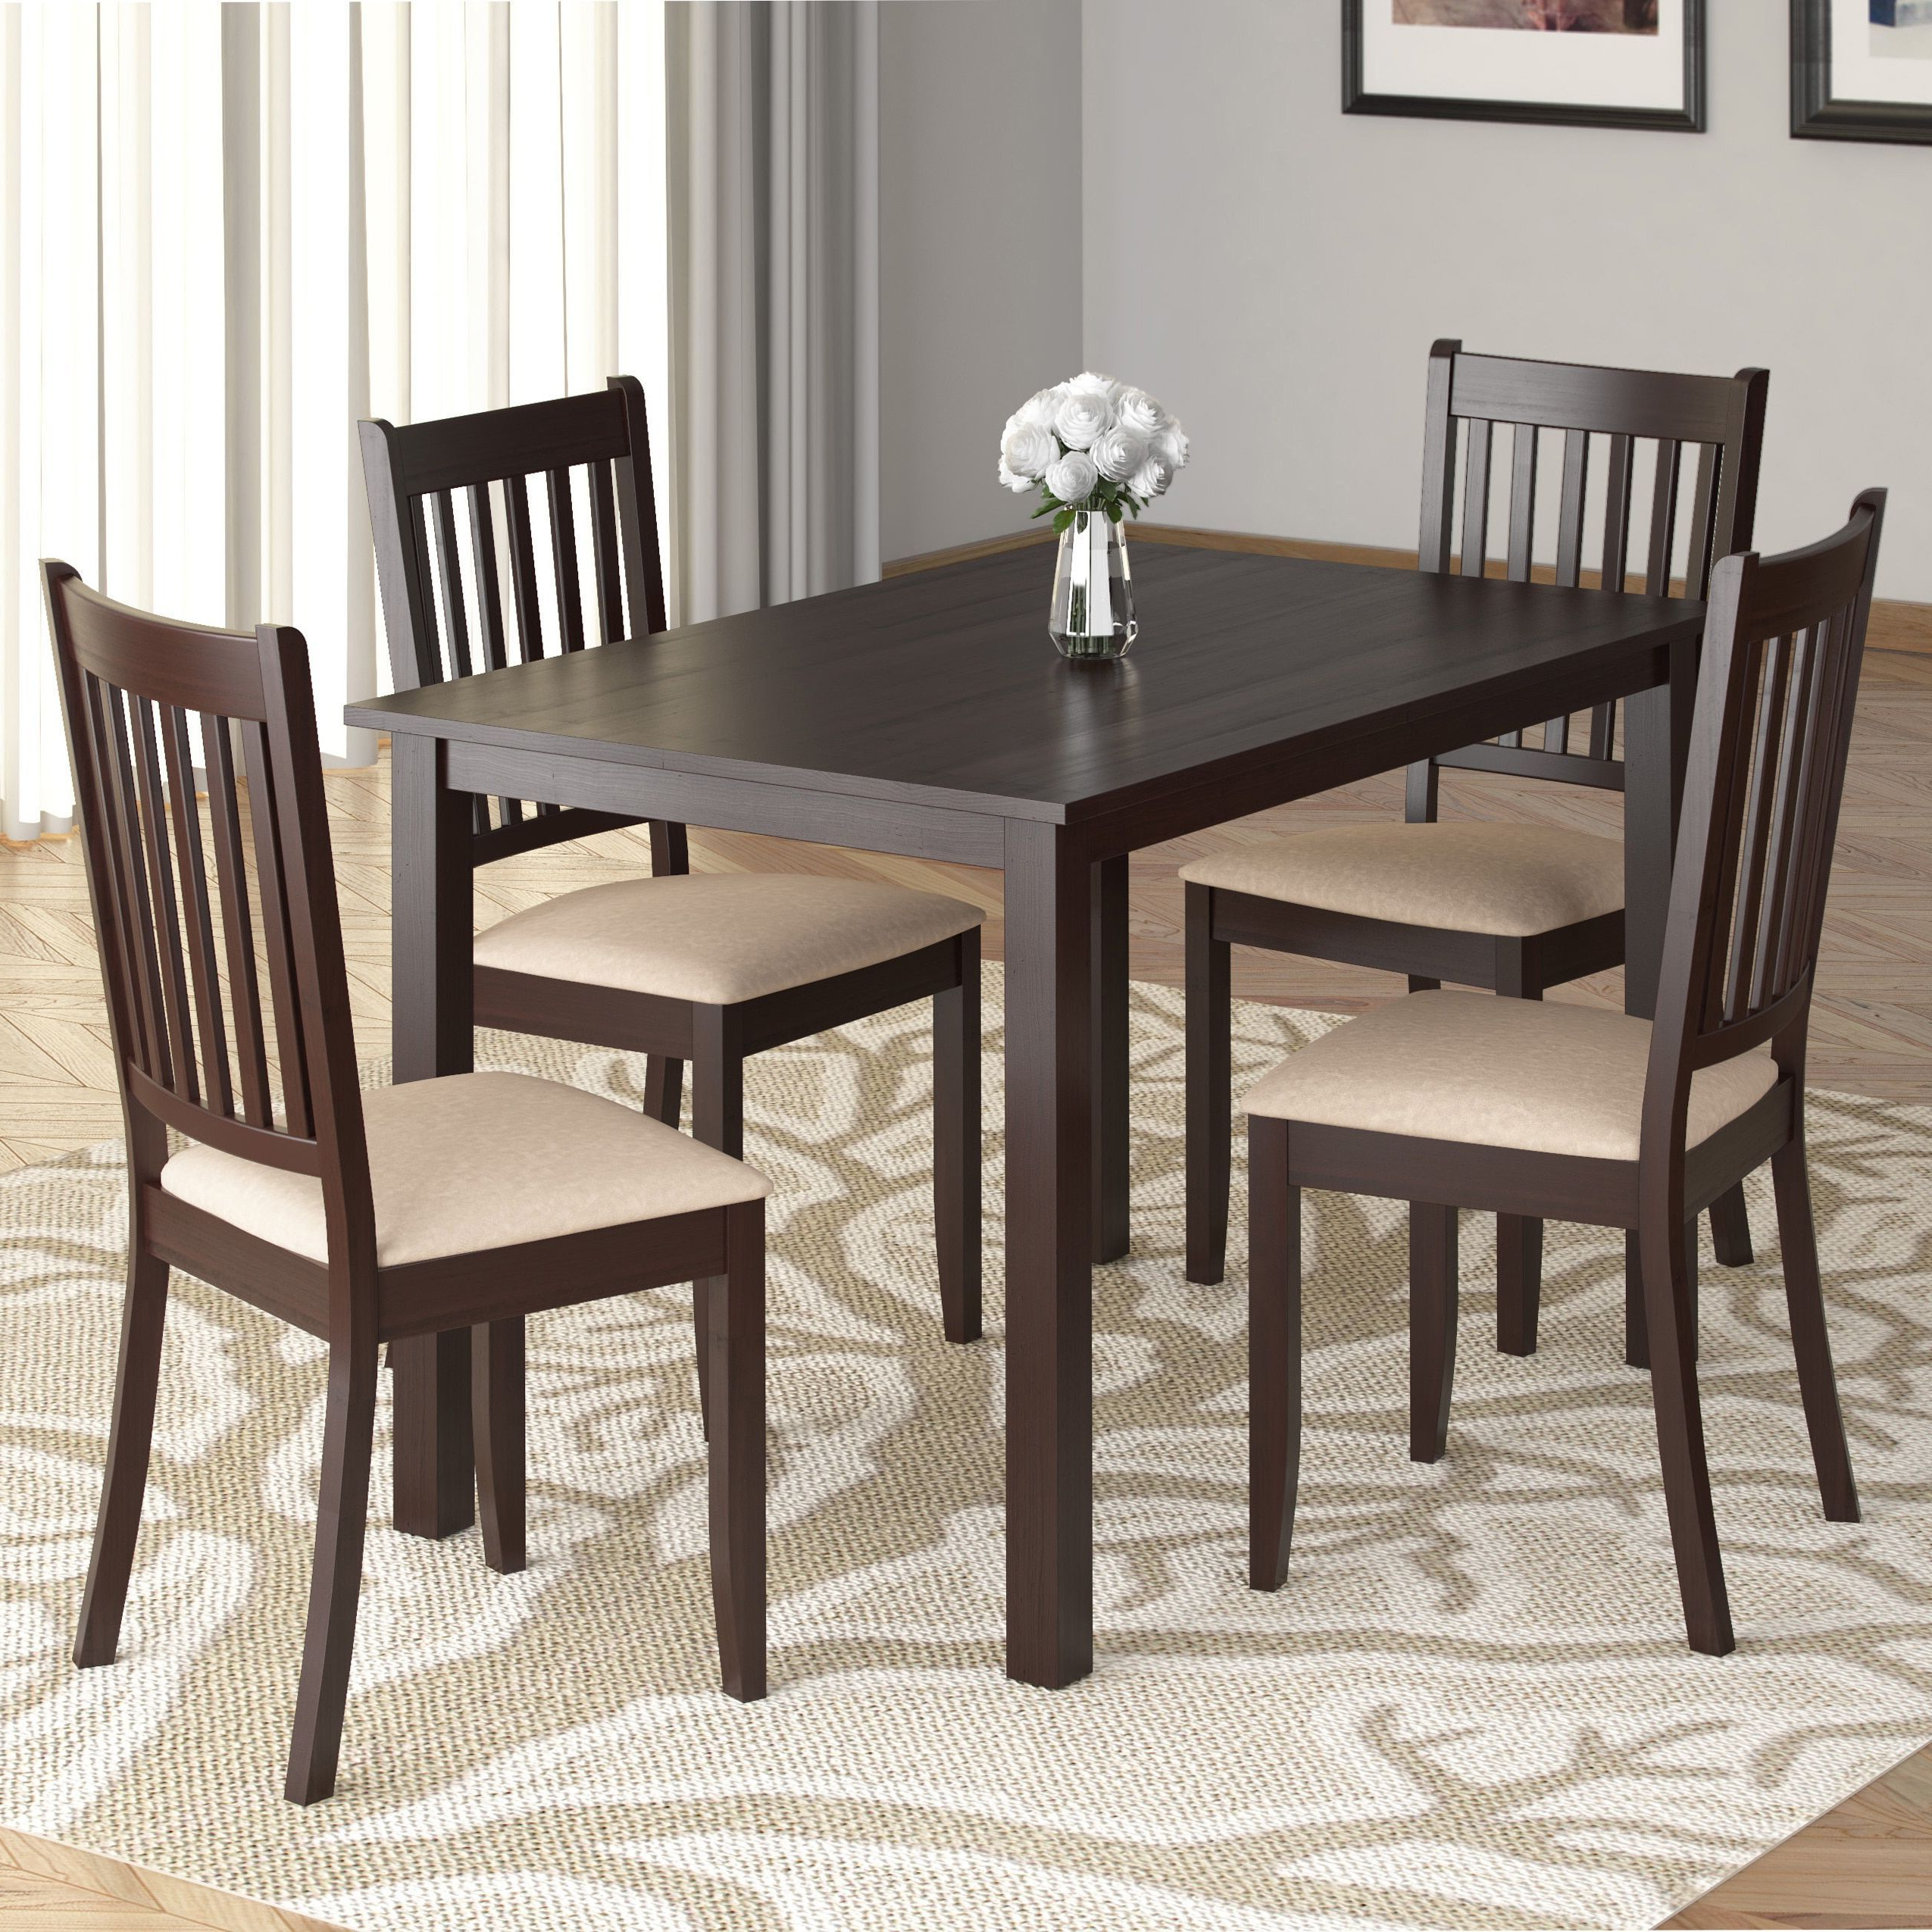 Atwood Transitional Rectangular Dining Tables In Most Up To Date Corliving Atwood 43 Inch Wide Cappuccino Stained Dining (View 11 of 25)